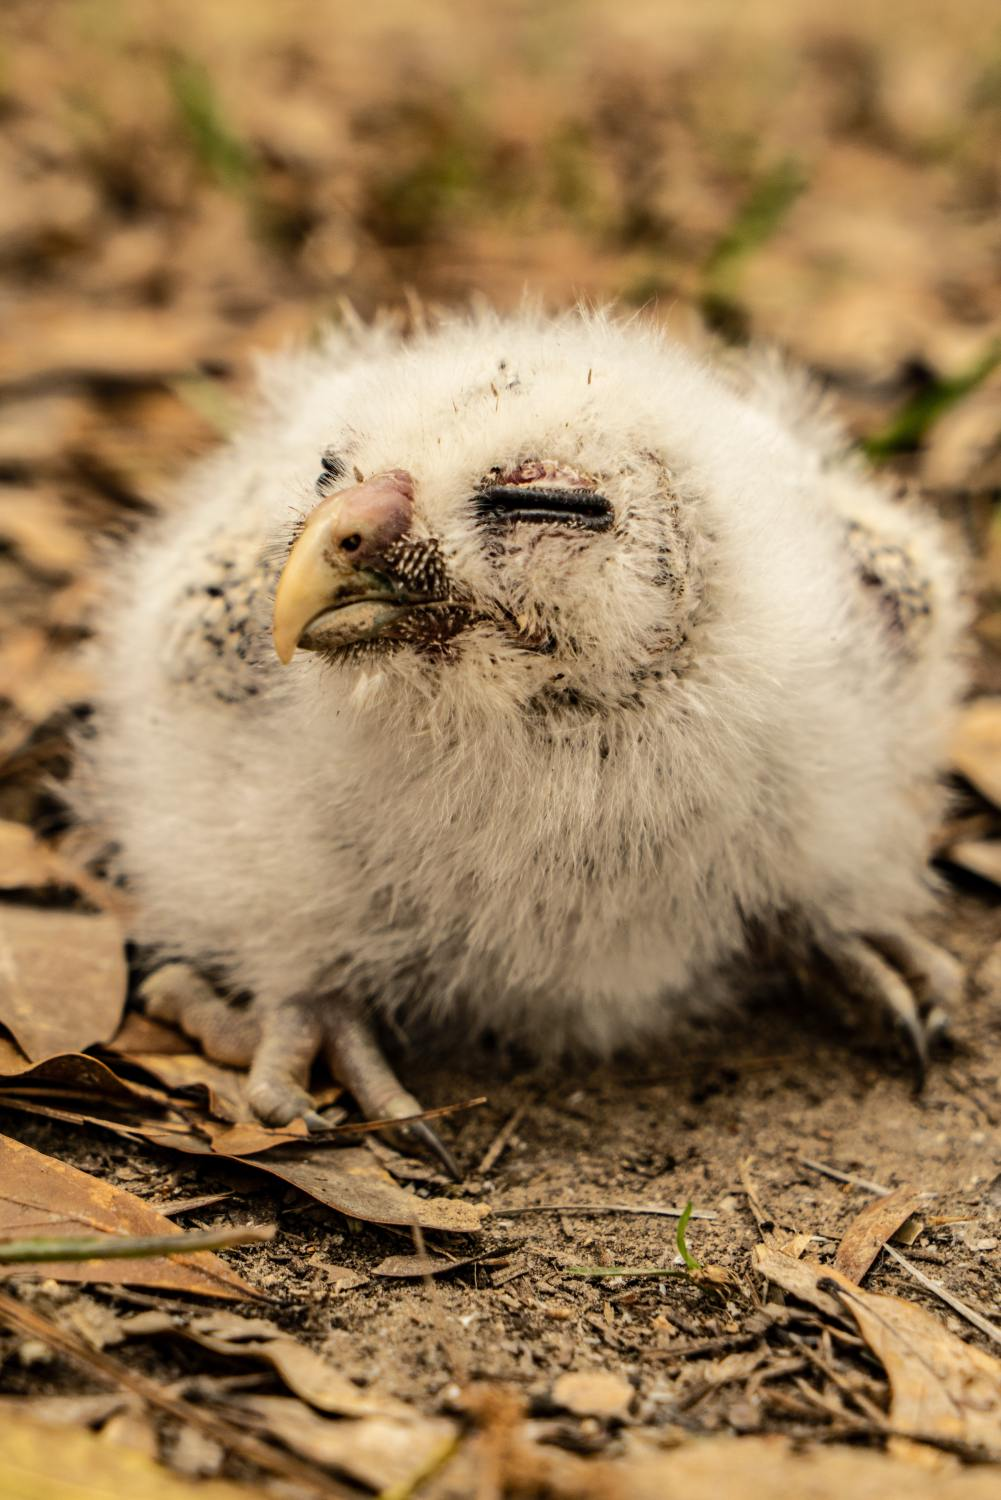 10 facts about baby owls you never knew before